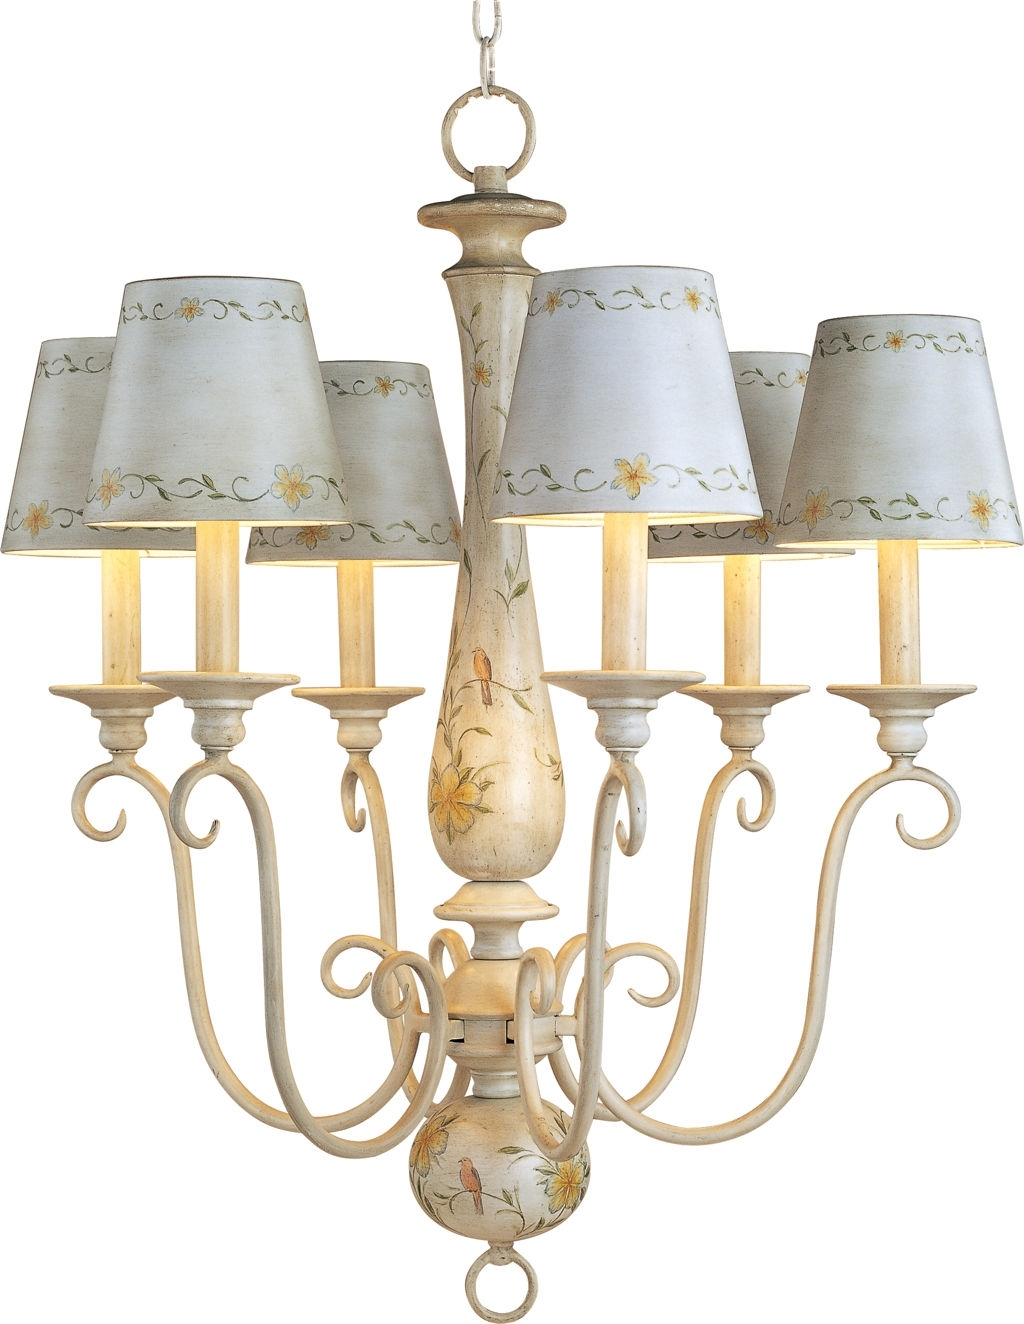 Widely Used Chandelier Lamp Shades Intended For Antique French Country Mini Chandelier With Ceramic Lamp Shades And (View 15 of 15)